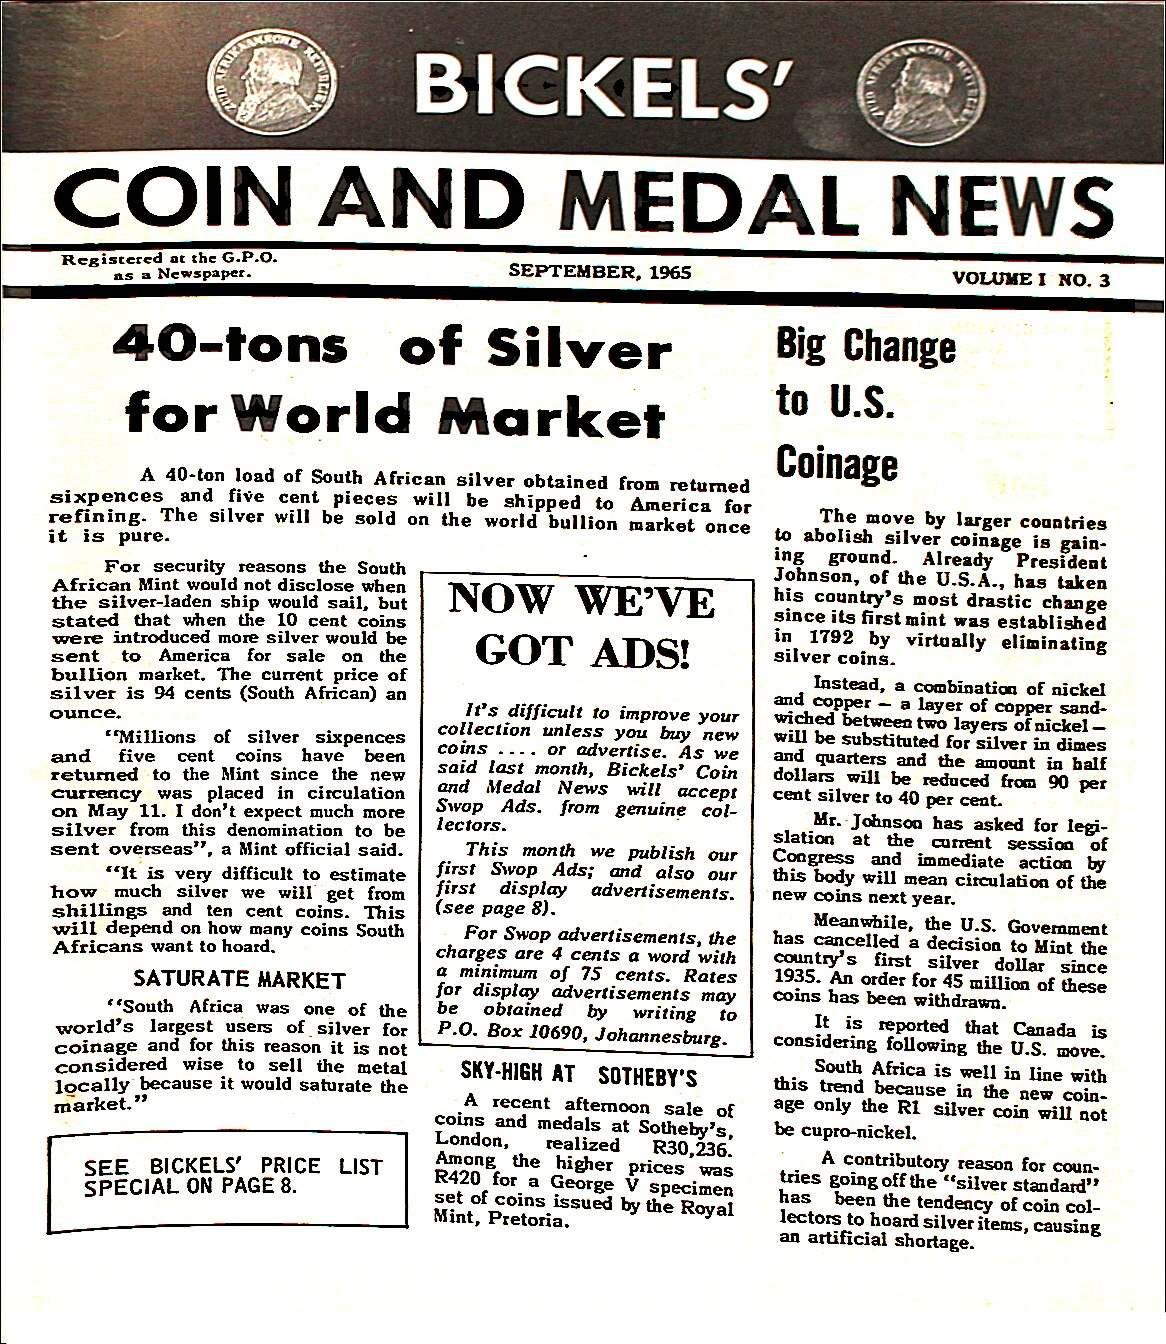 Bickels Coin & Medal News September 1965 Vol 1 No 3